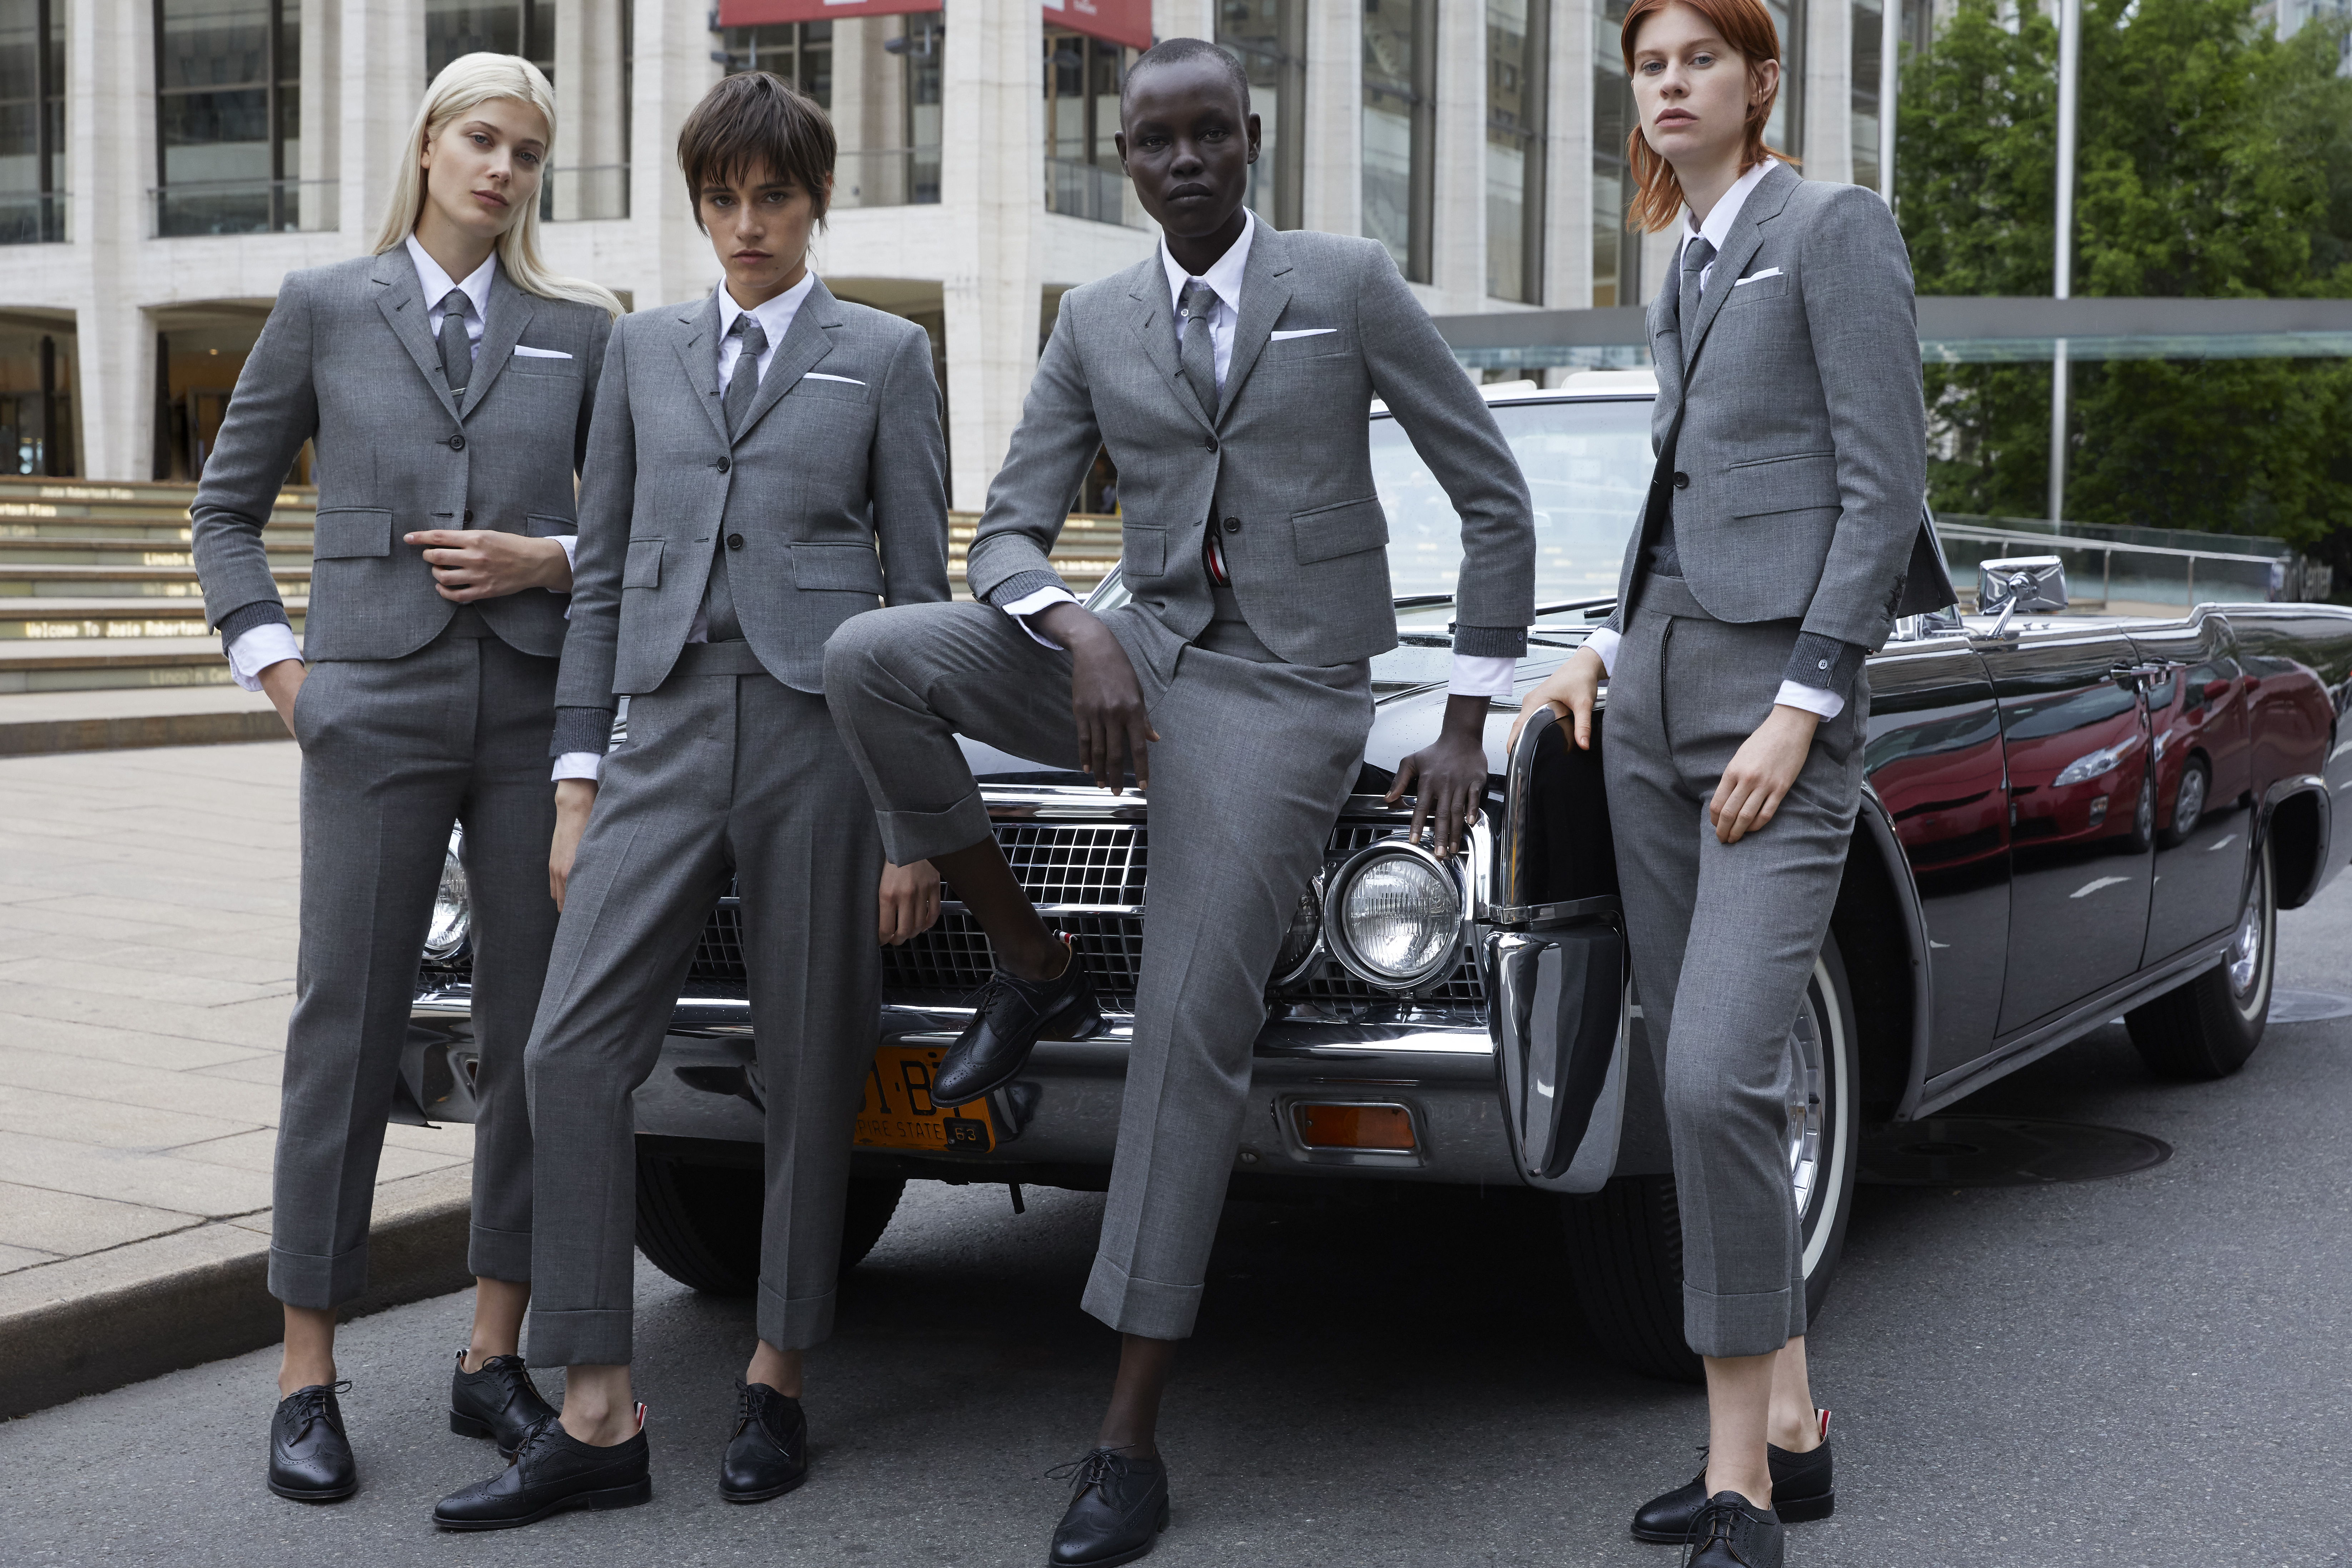 Thom Browne Fall 2019 Ad Campaign by Thomas Lohr